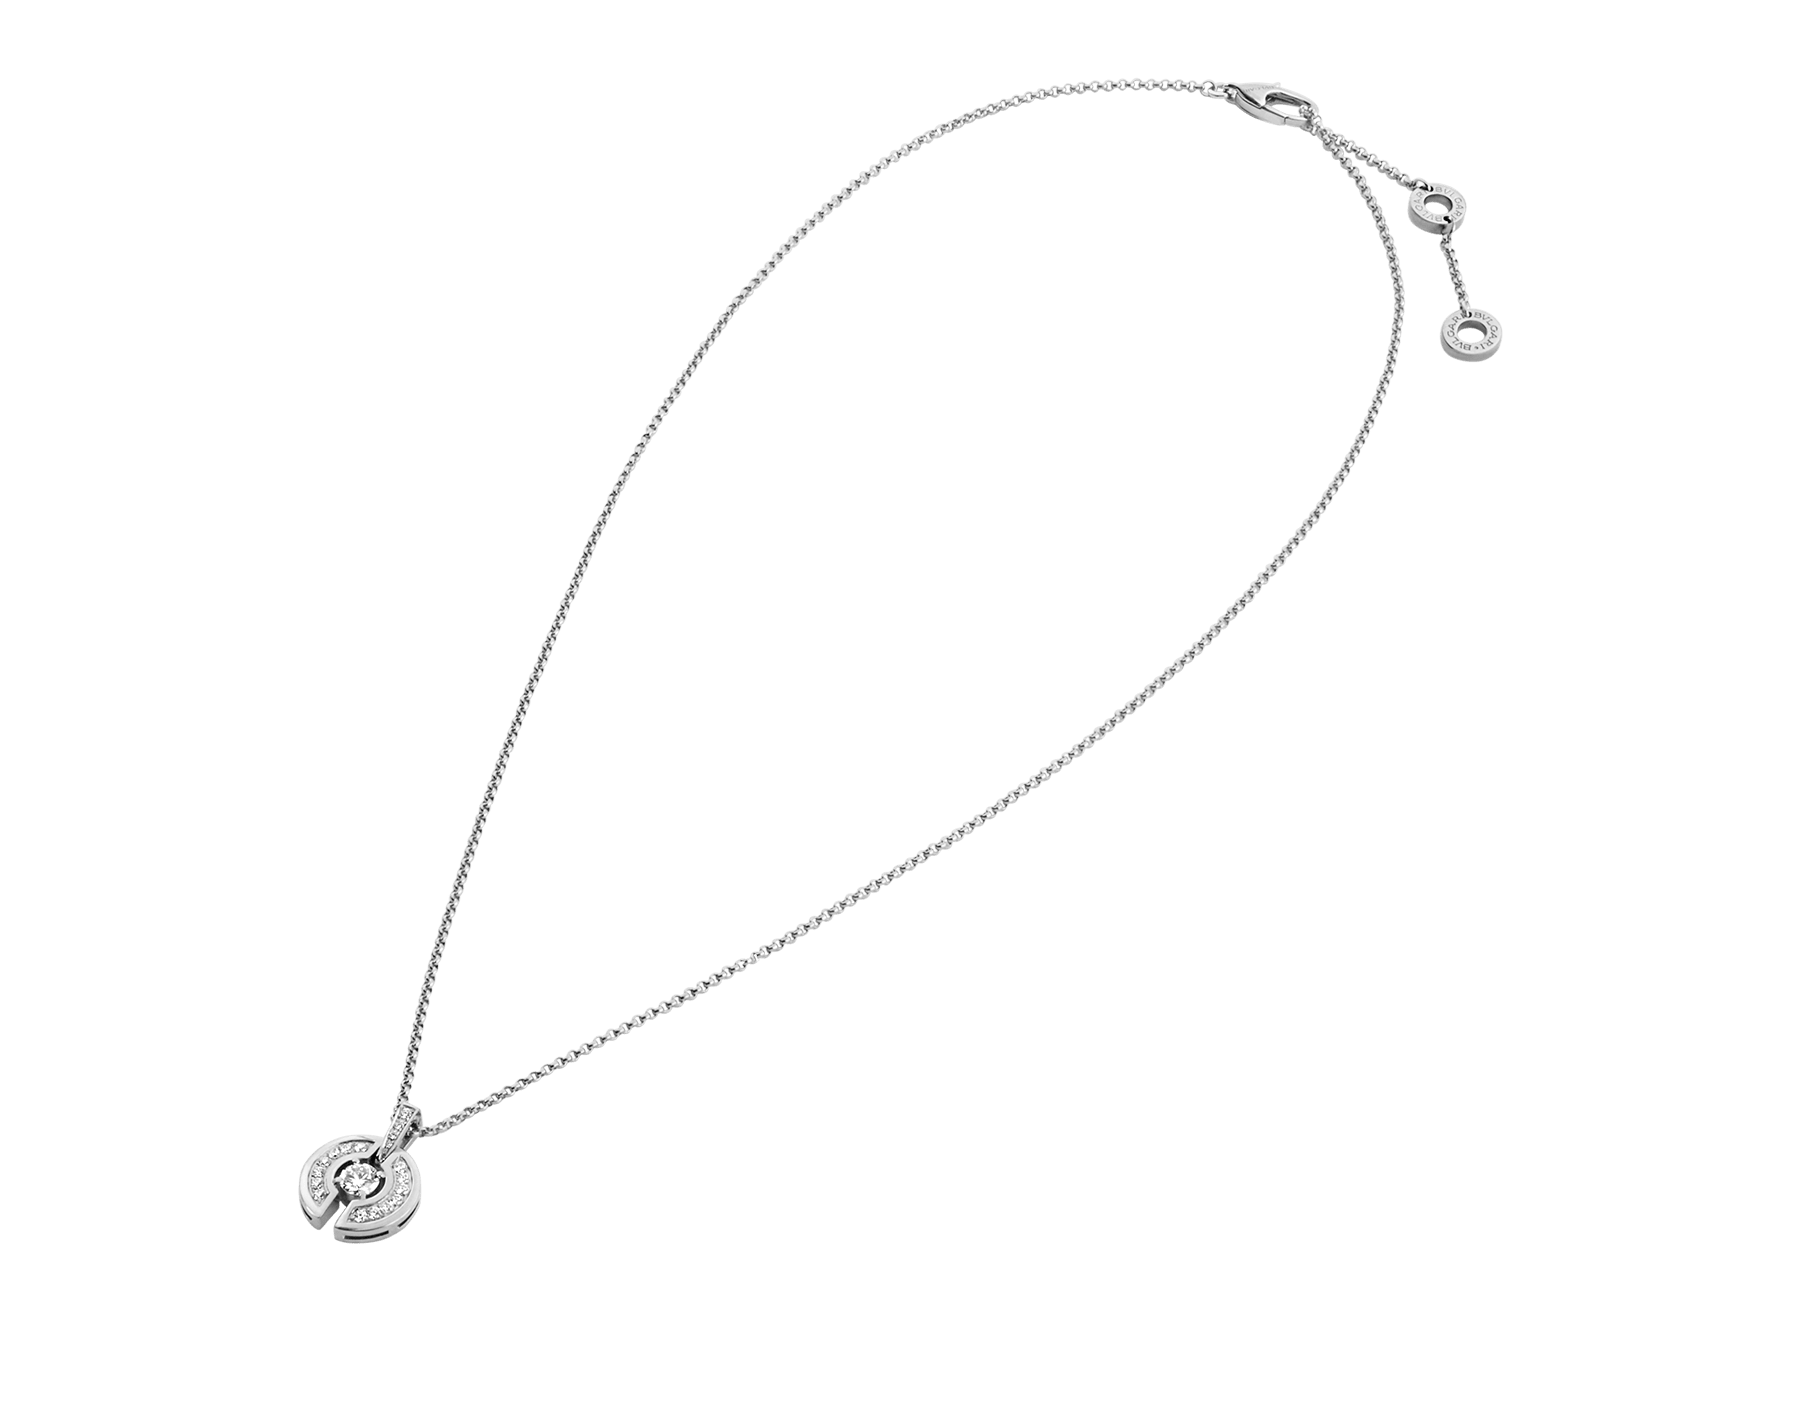 Parentesi necklace with 18 kt white gold chain and pendant, set with a central diamond. 354311 image 3